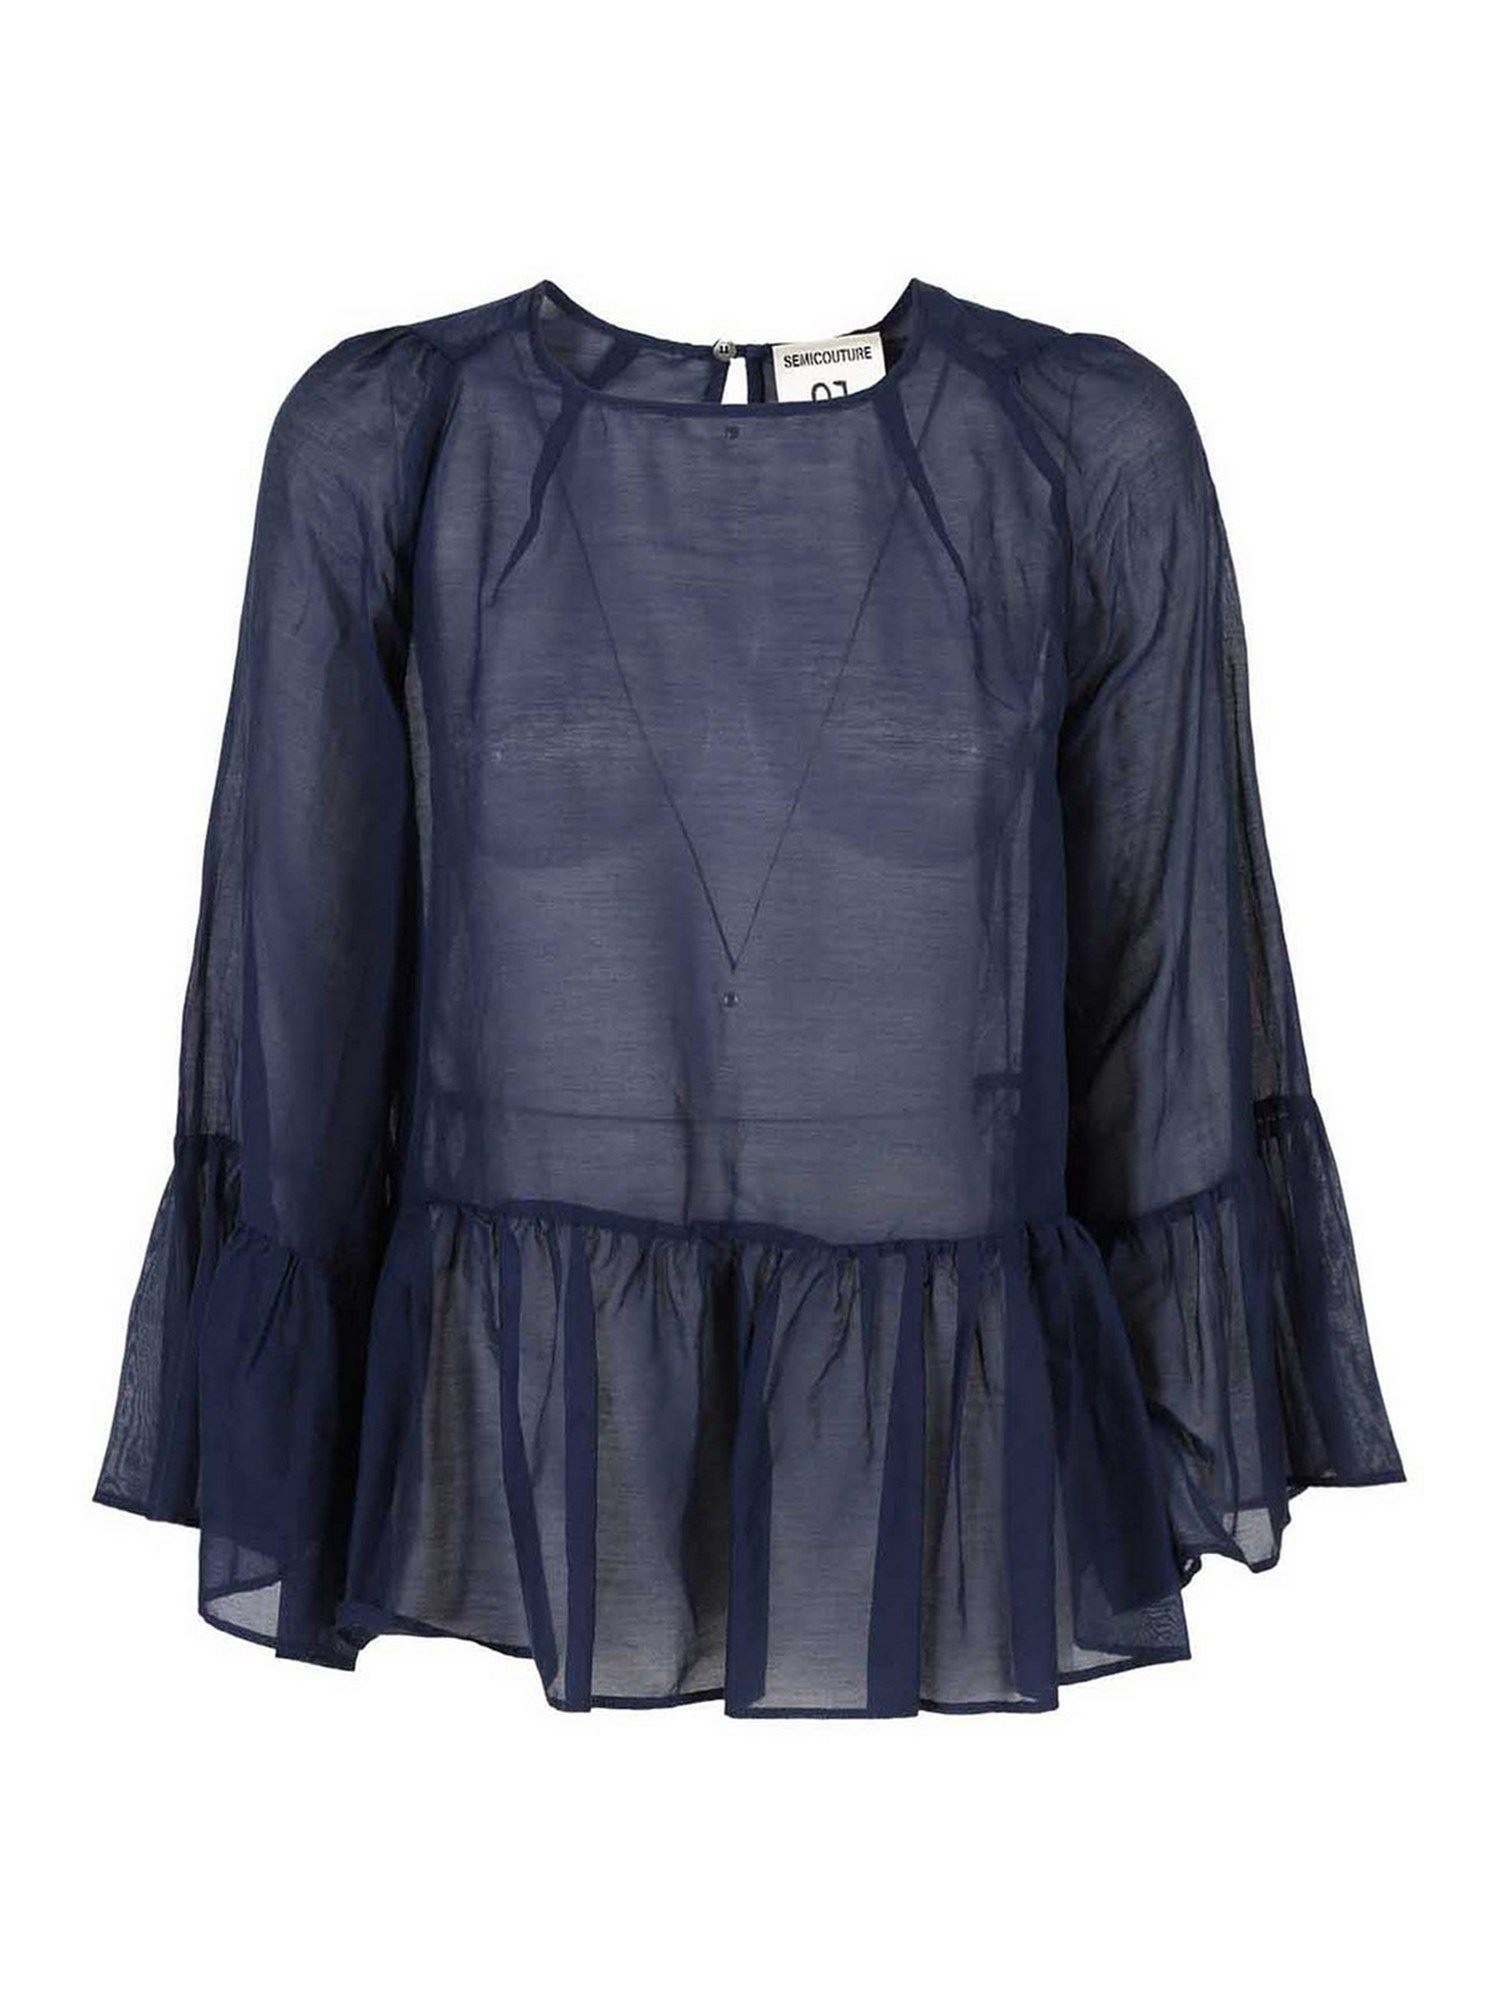 Semicouture FRANCE BLOUSE IN BLUE